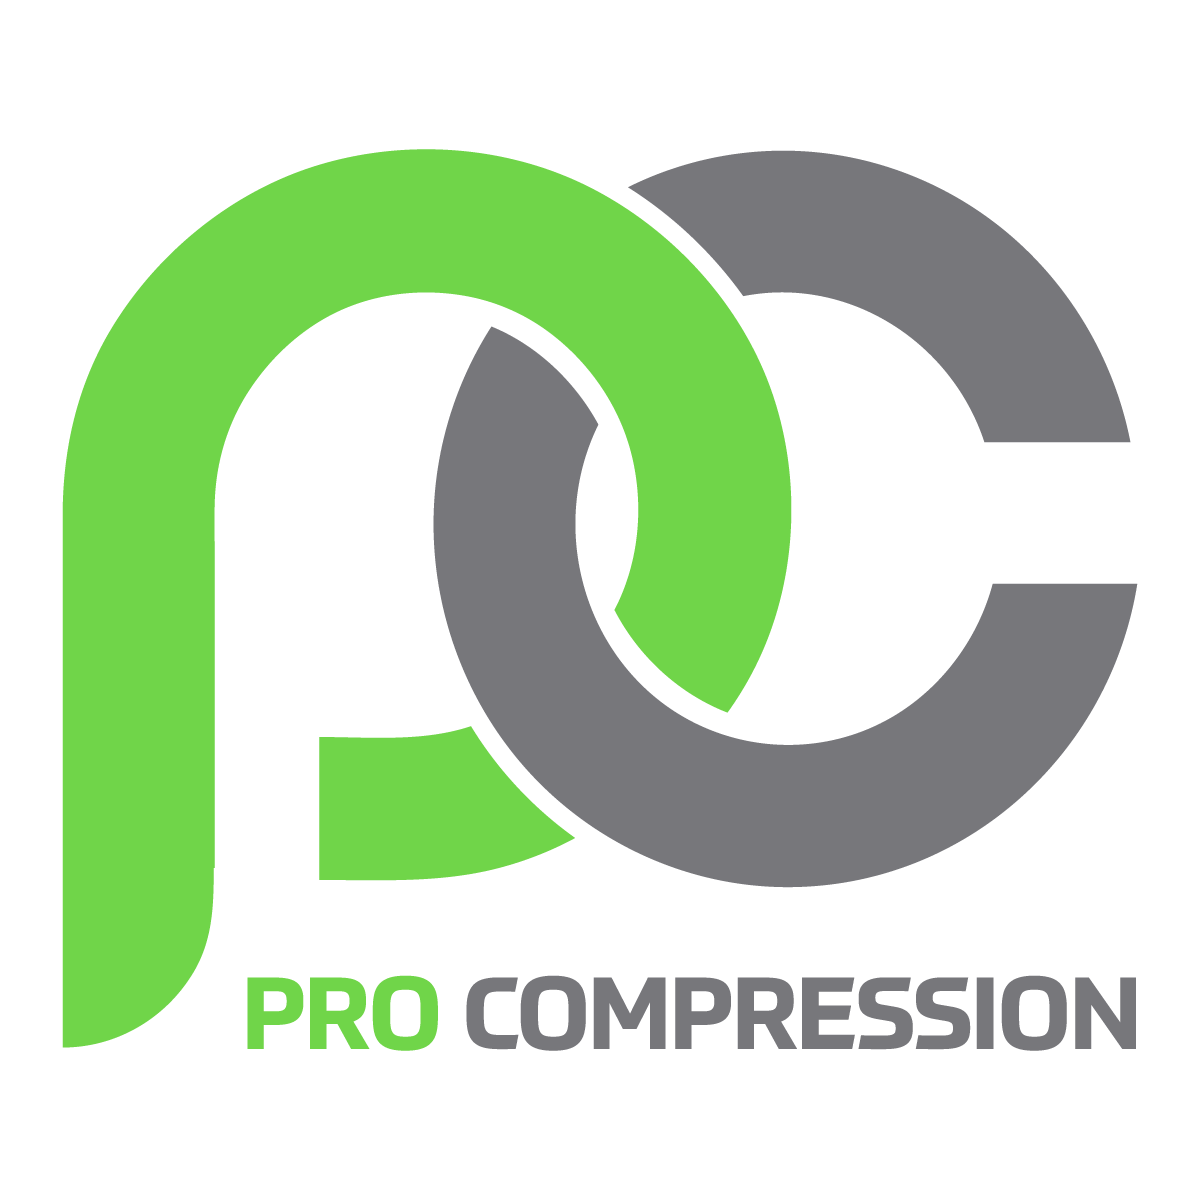 PRO Compression Socks event offer Logo